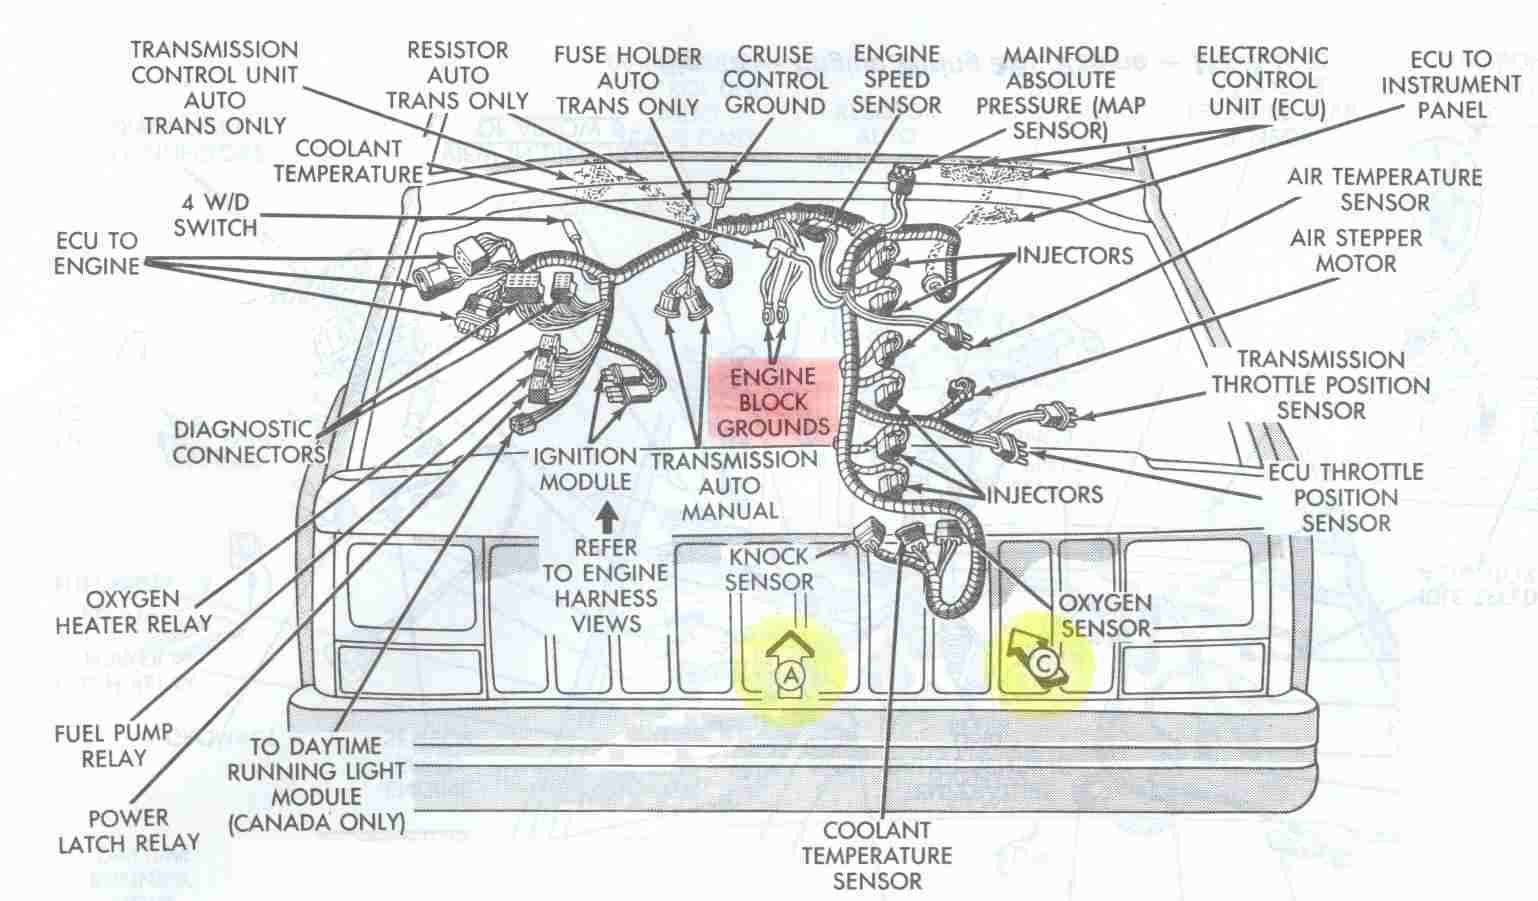 Engine Bay Schematic Showing Major Electrical Ground Points For 40l Fuse Box Grounding Jeep Cherokee Engines